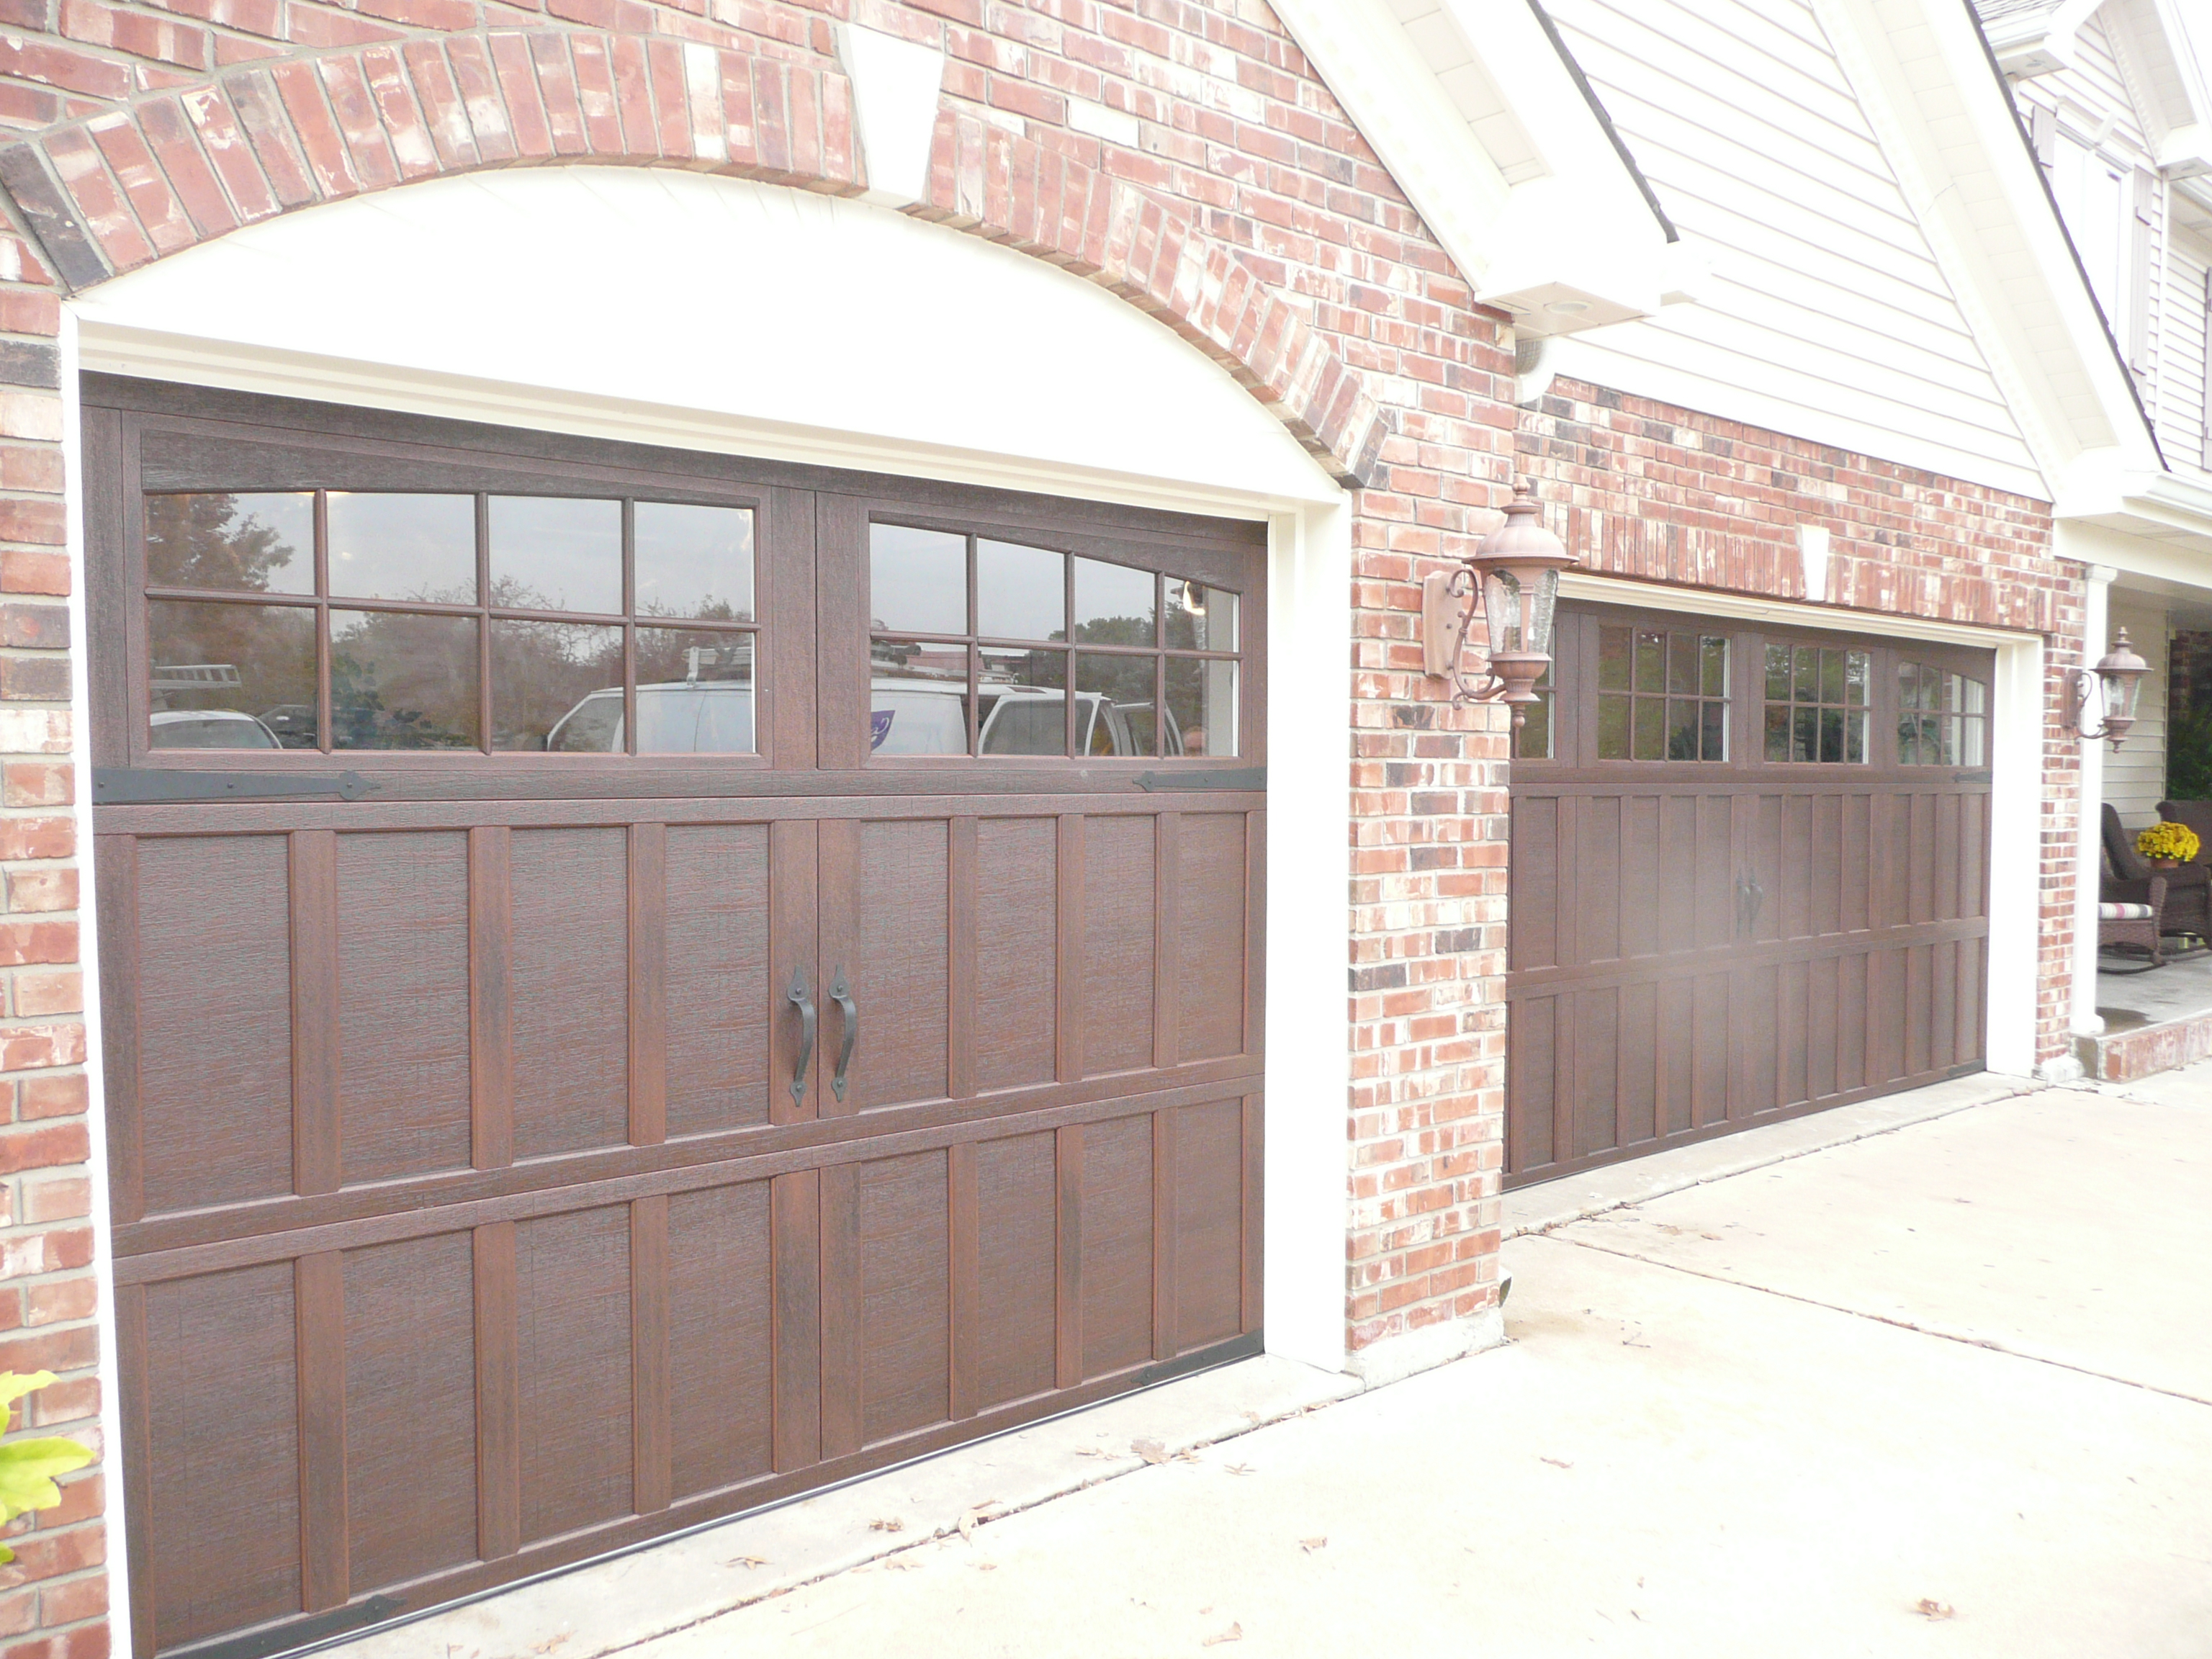 Garage Door Repair Lake St Louis Mo Techpaintball